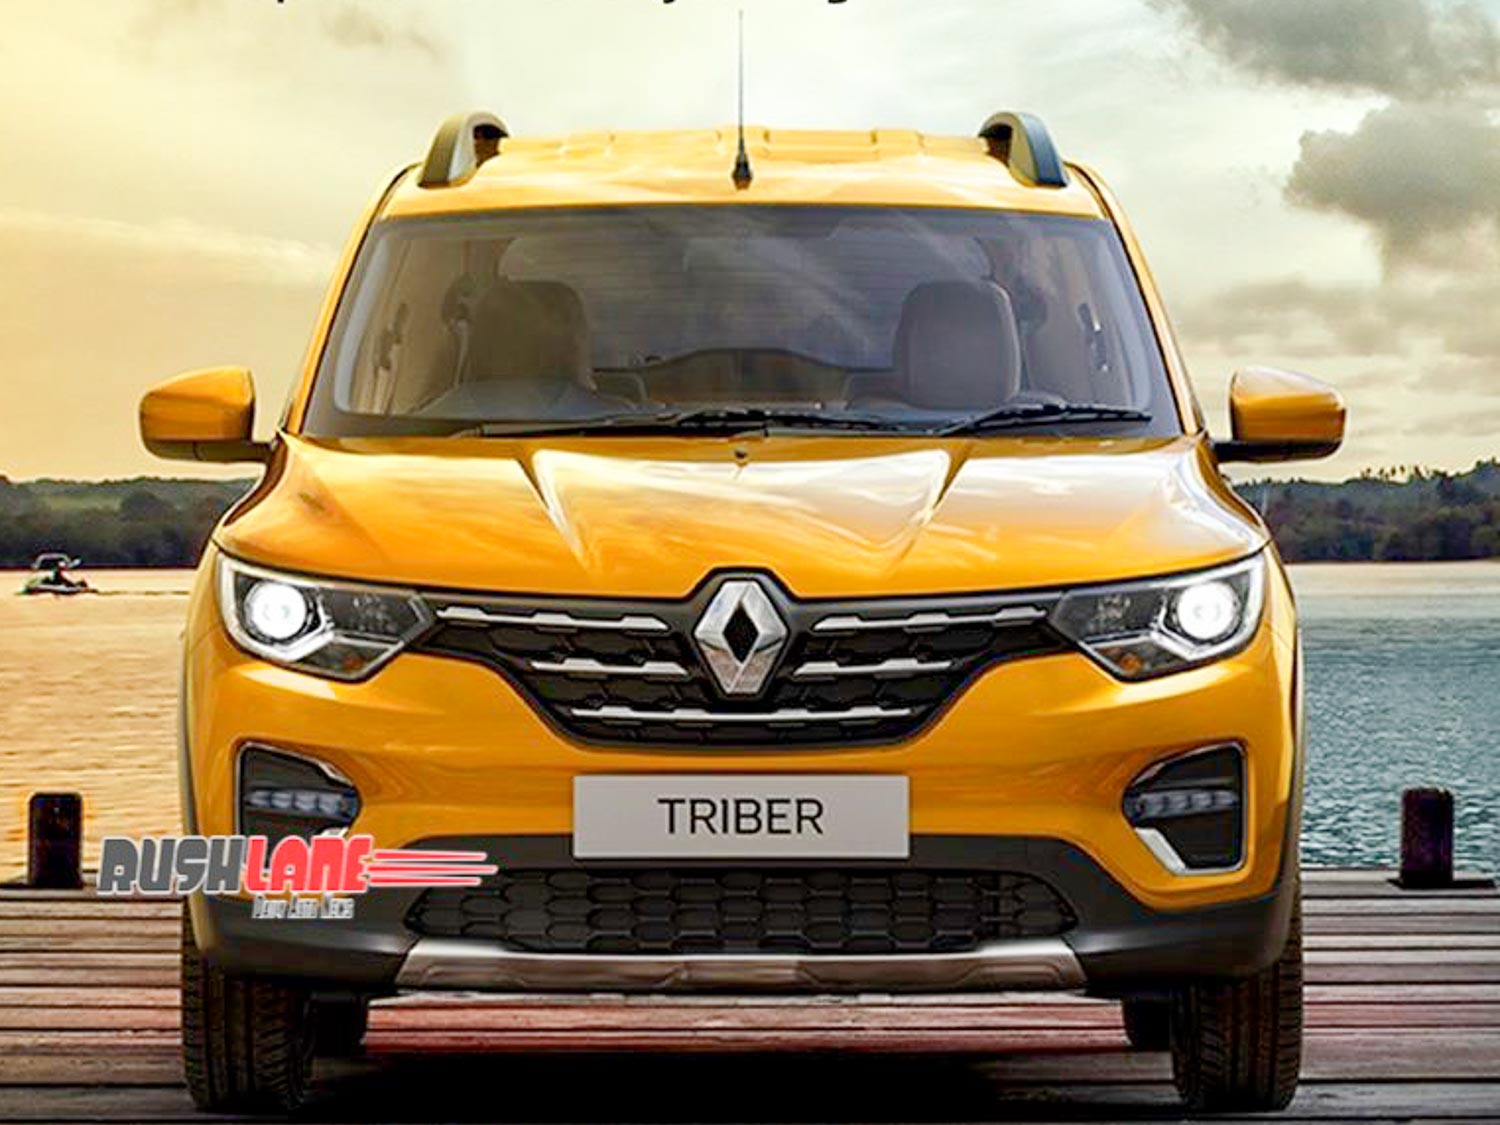 New Renault Car Discounts July 2020 up to Rs 70k – Kwid, Triber, Duster